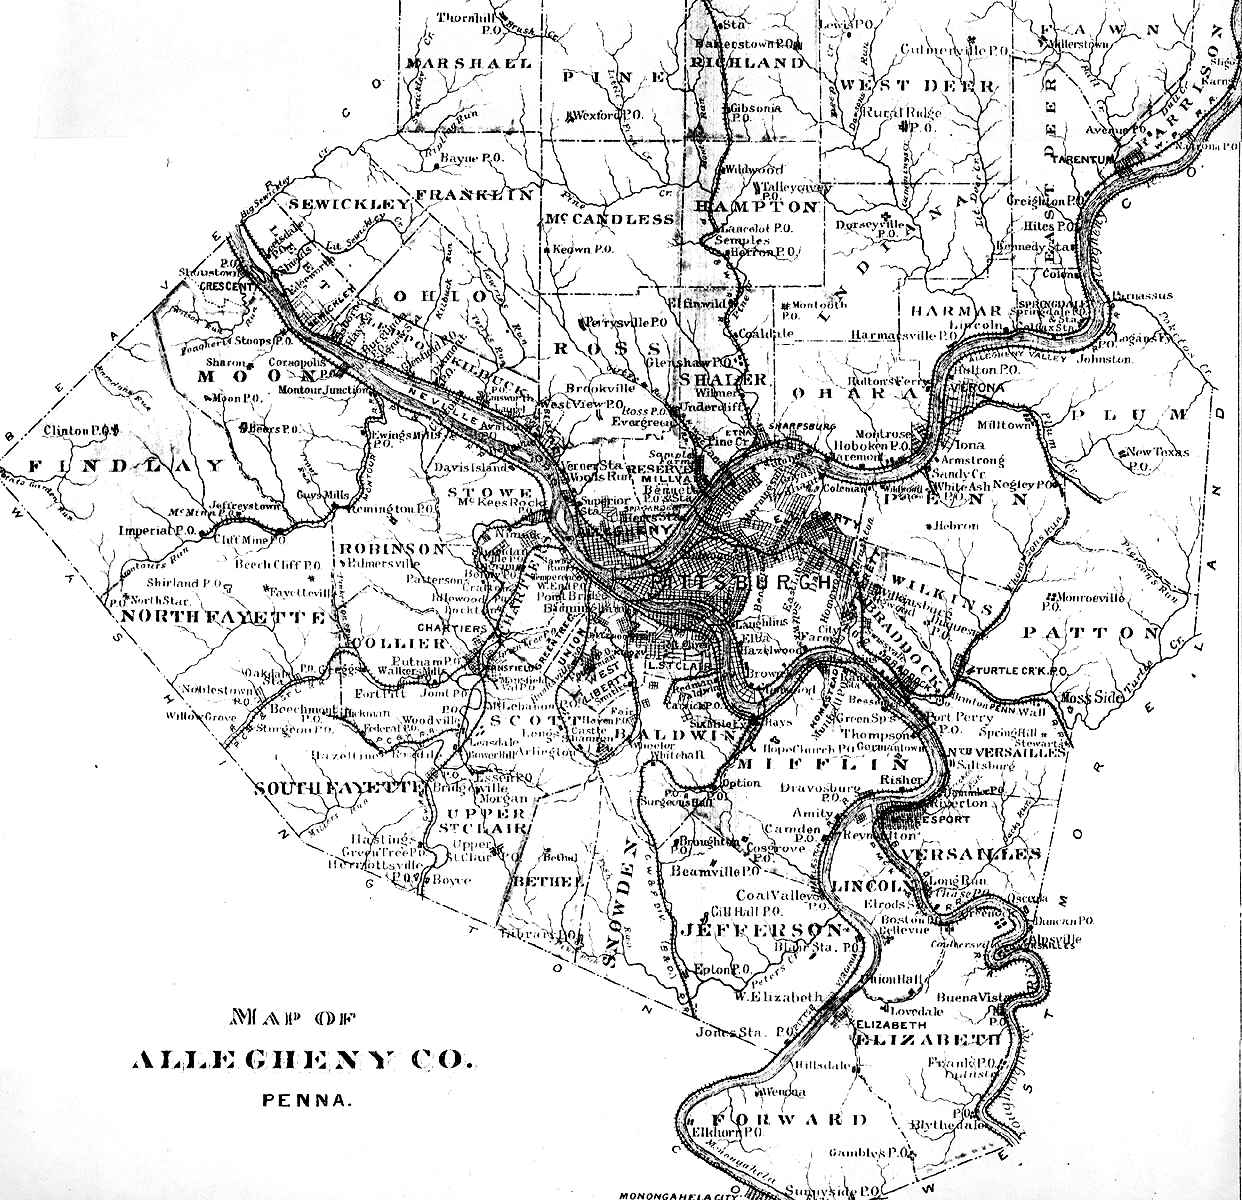 Allegheny county pennsylvania maps and gazetteers allegheny map 1889 publicscrutiny Images